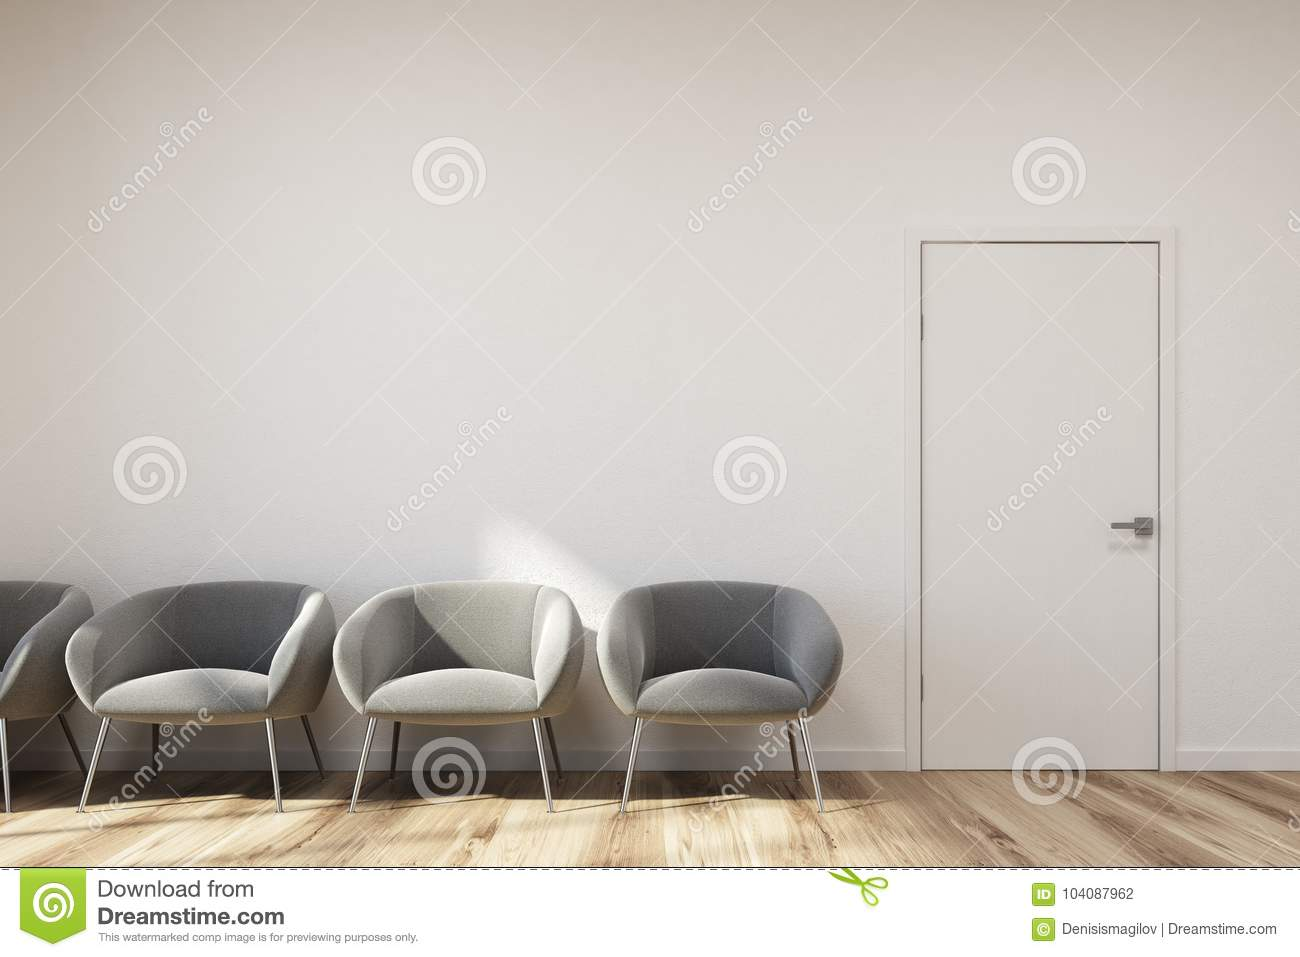 Pleasant White Waiting Room Gray Chairs Stock Illustration Bralicious Painted Fabric Chair Ideas Braliciousco